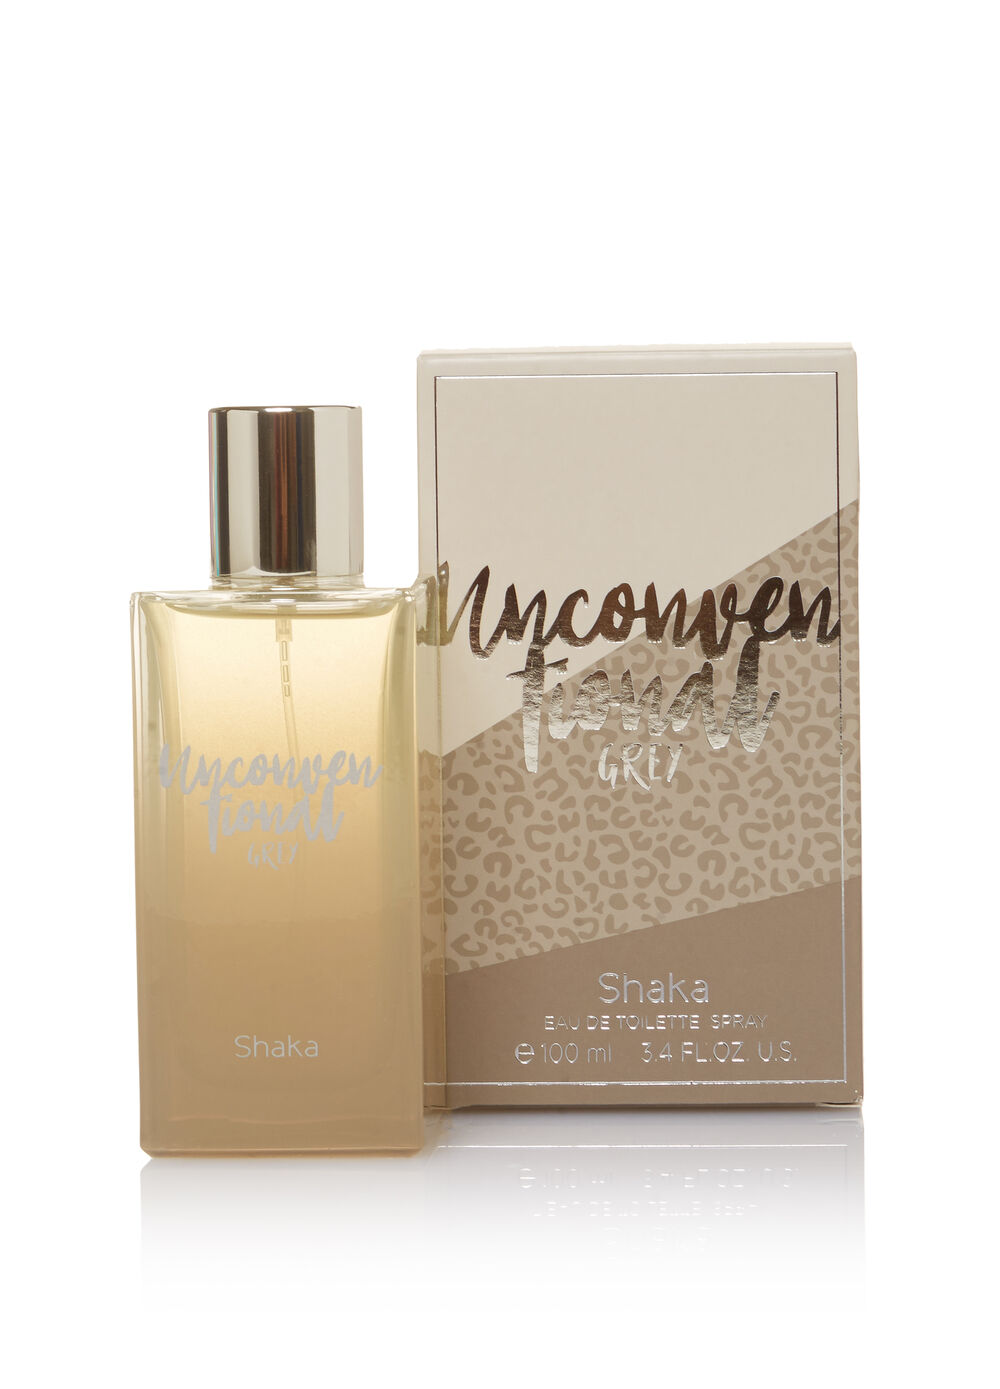 Unconventional Nude Edt perfume